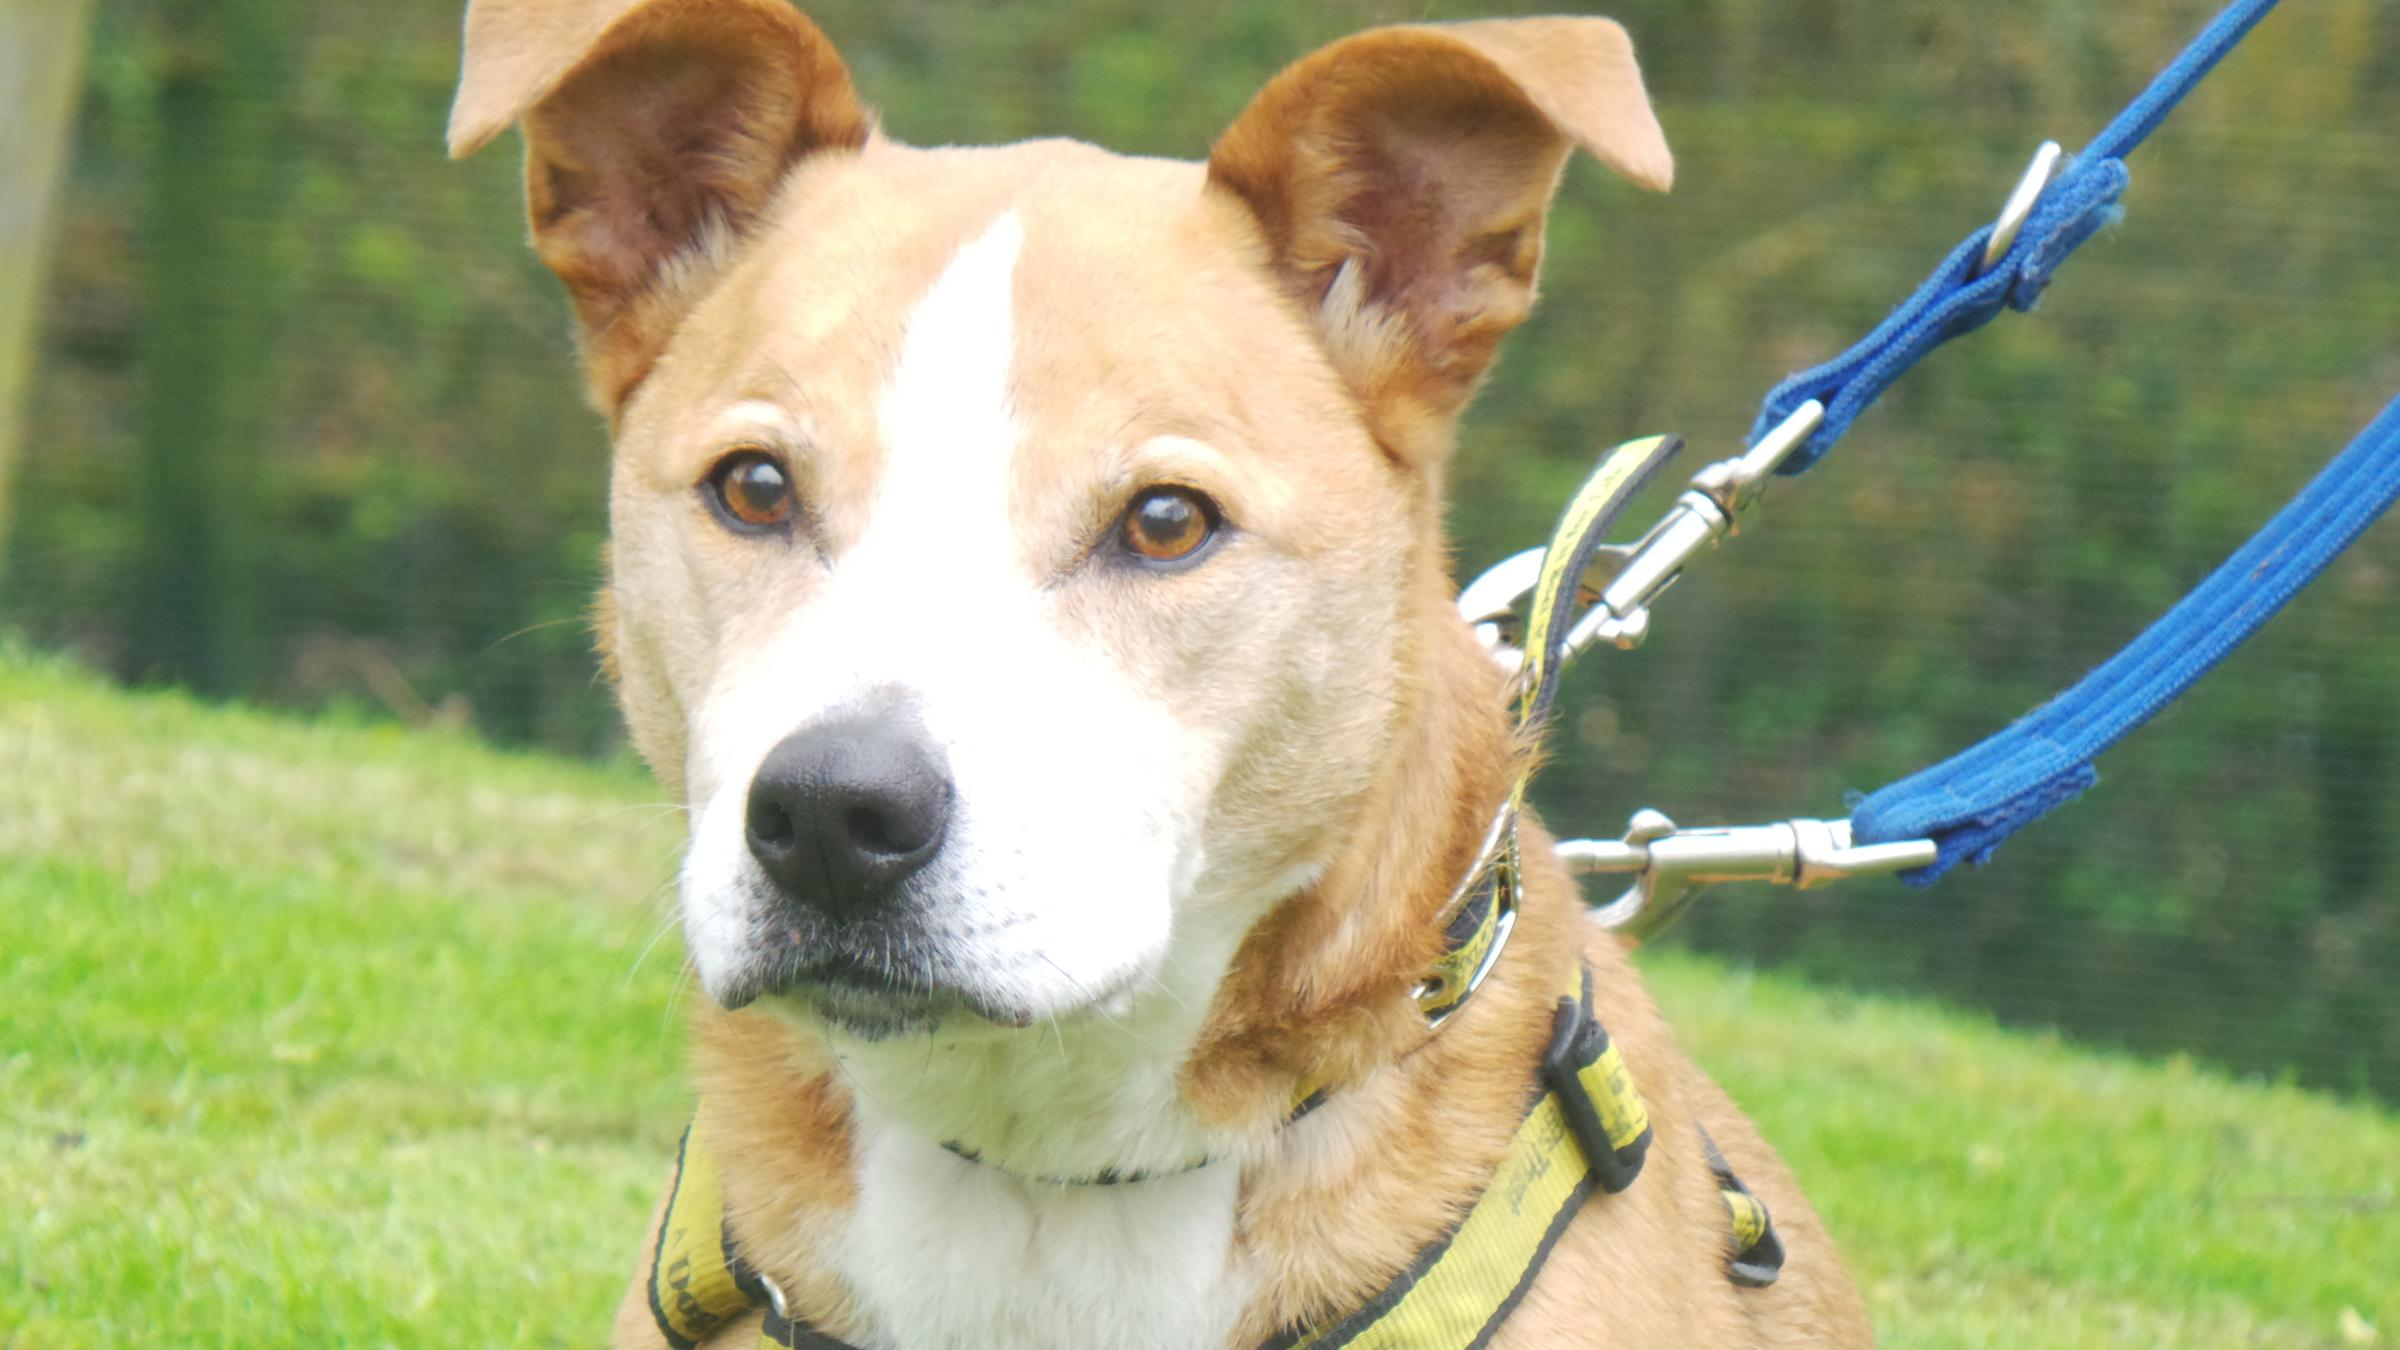 12-year-old crossbreed Beauty is currently spending time at Dogs Trust Merseyside